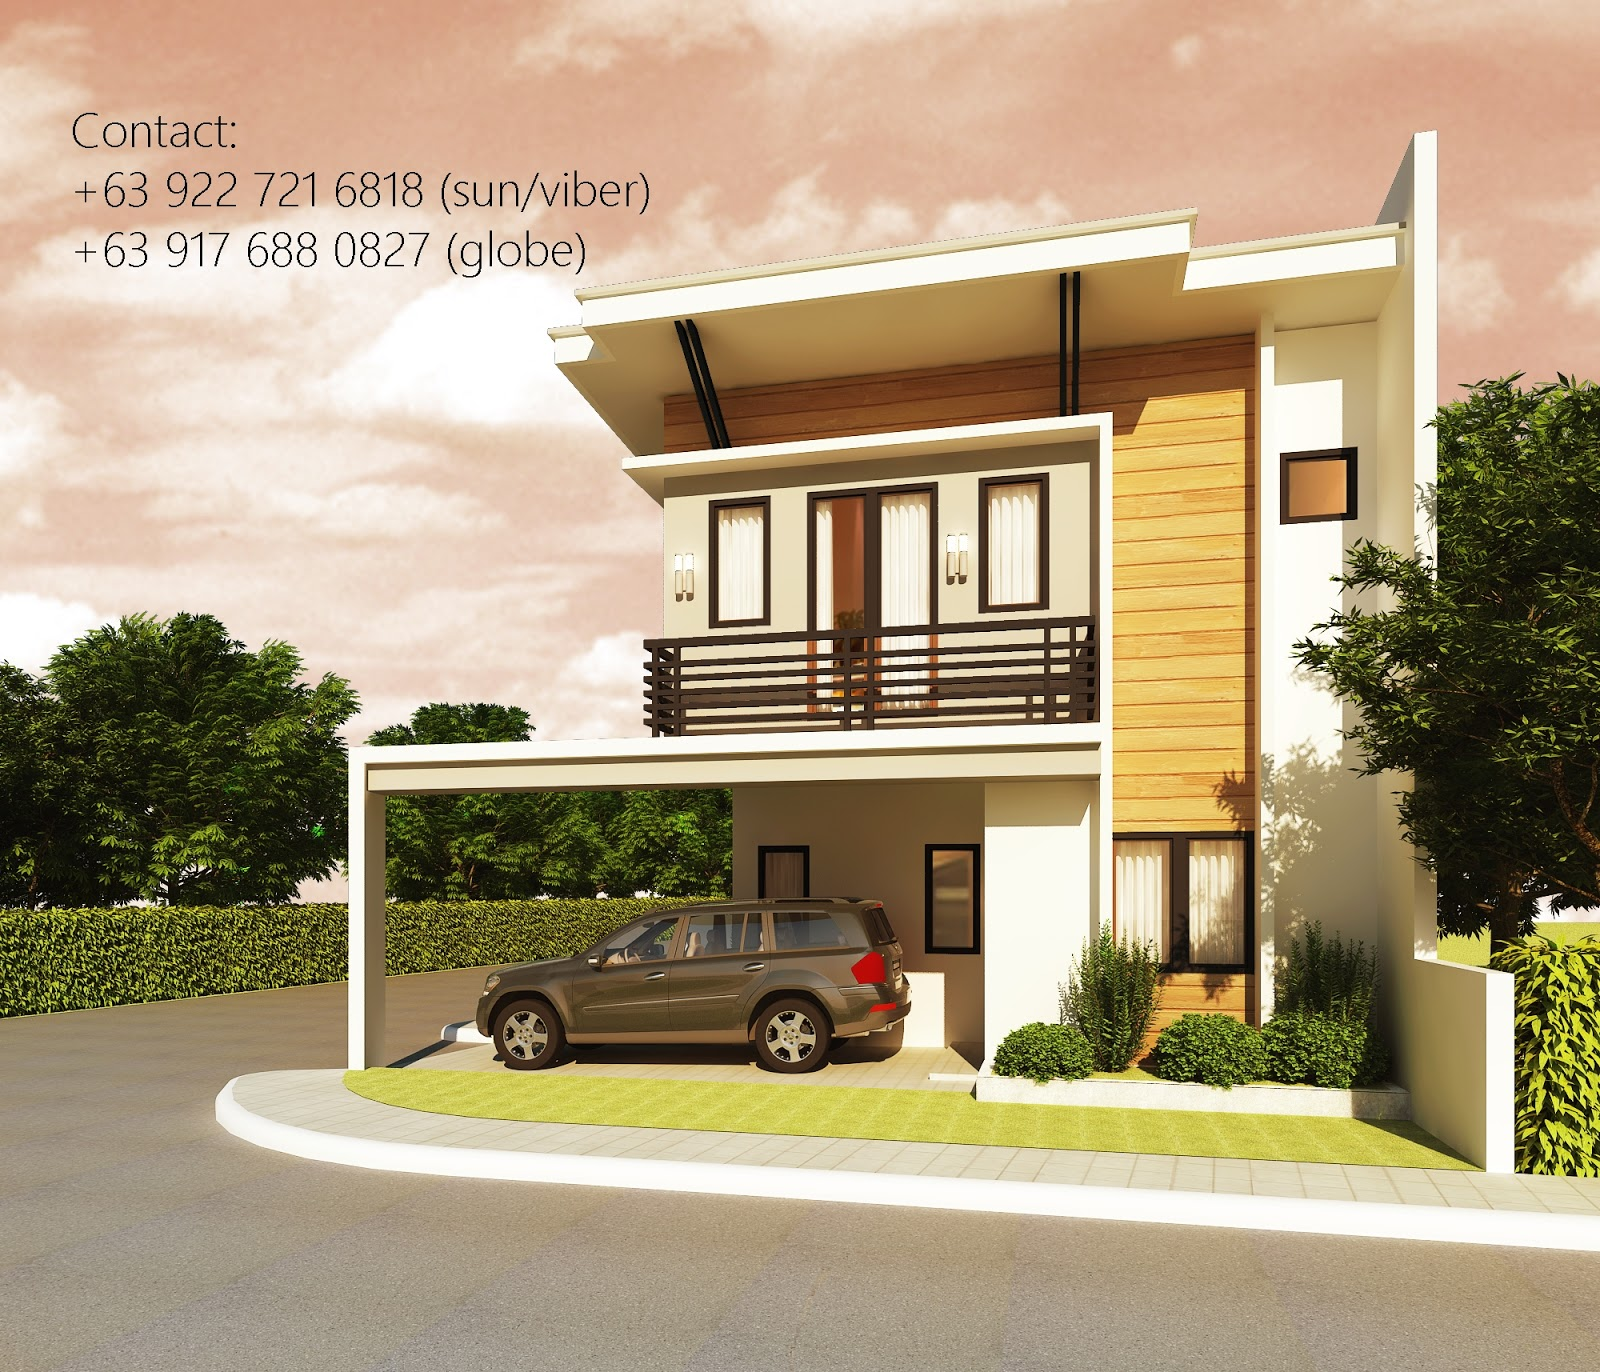 Affordable Rent To Own Pag-ibig Houses: Php 16k Only